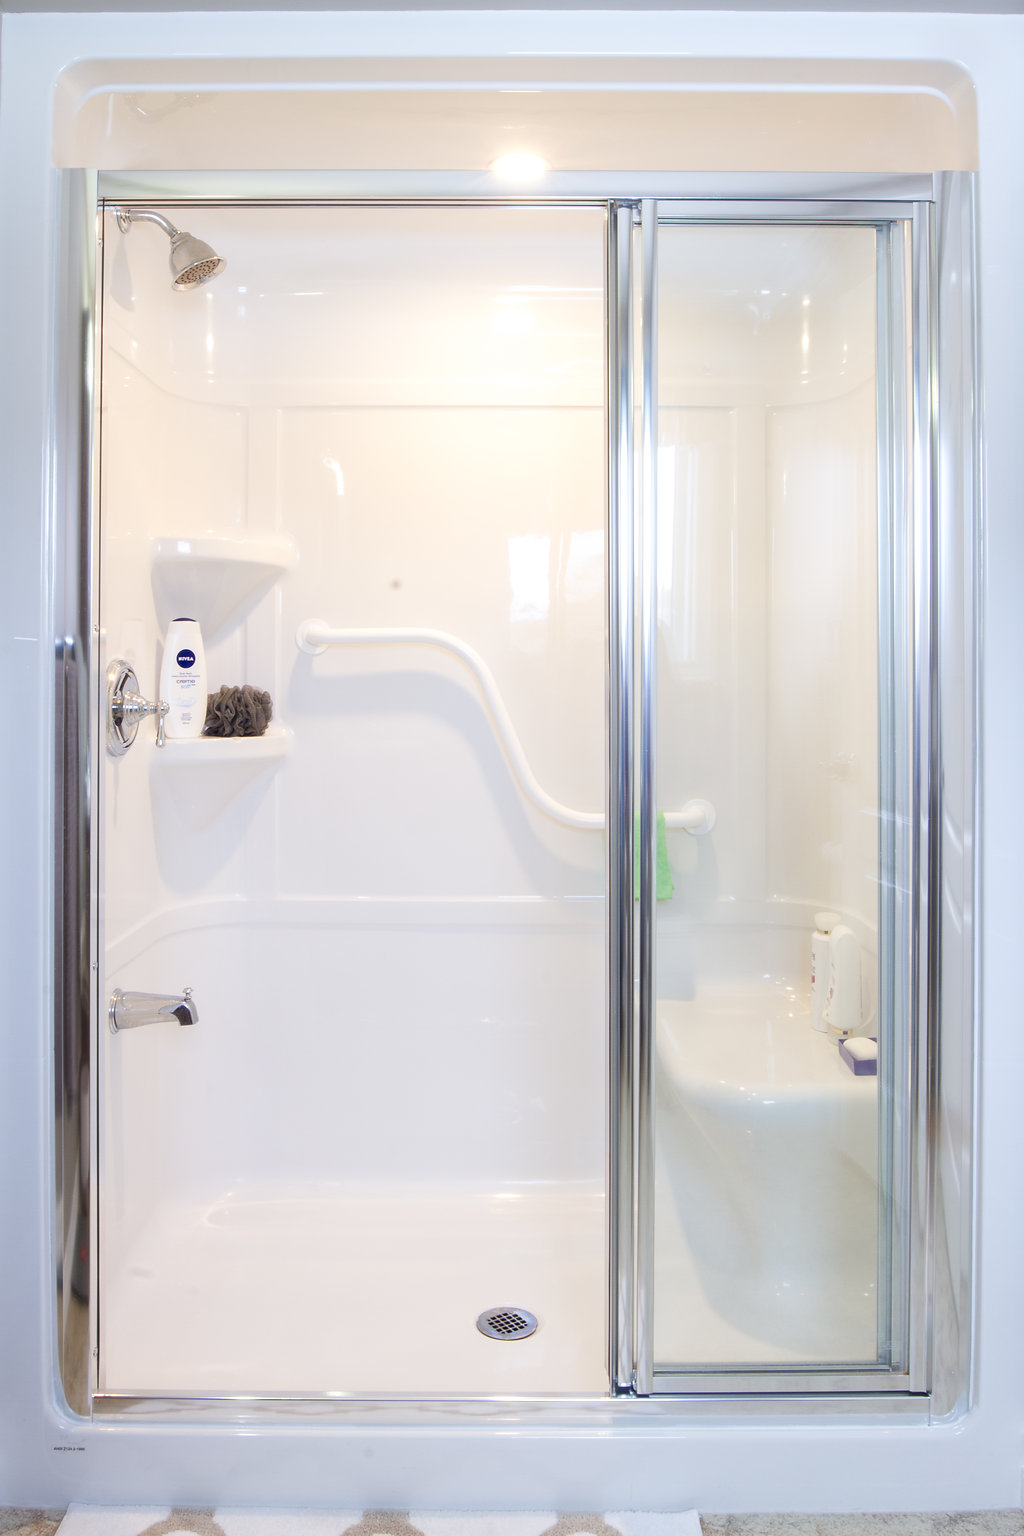 Walk-In Accessibility Shower with Rail & Seat